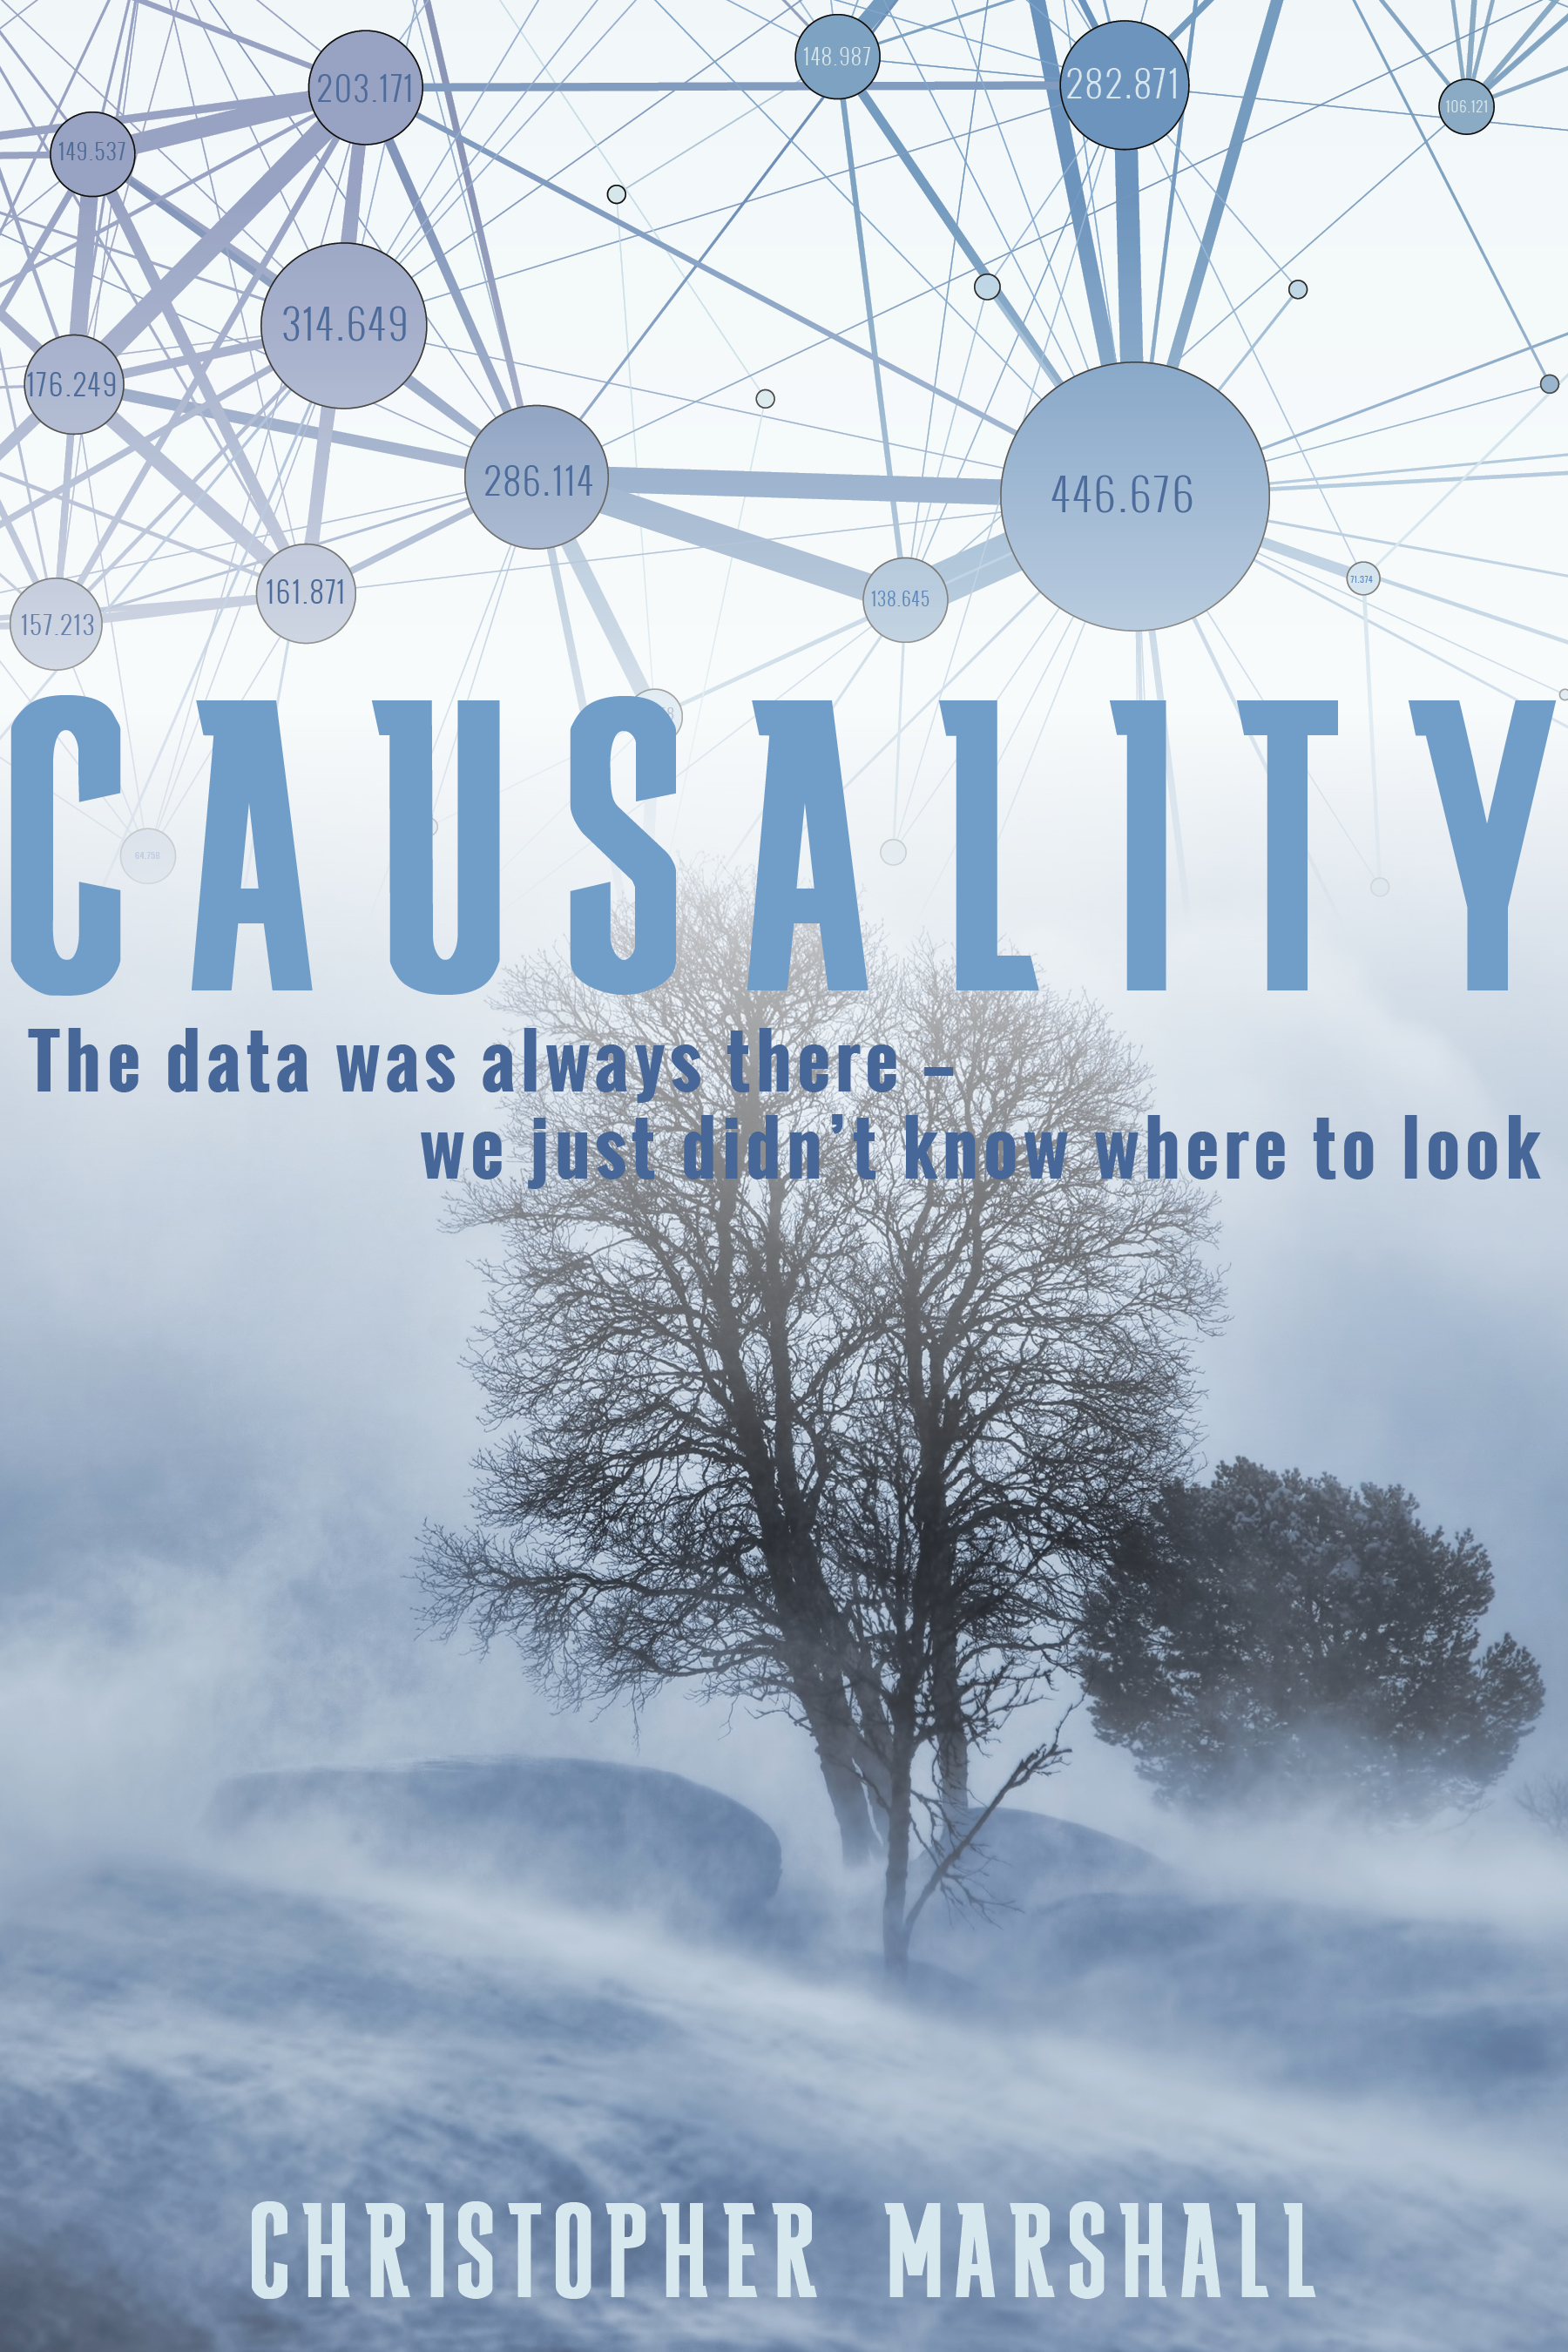 Causality by Christopher Marshall